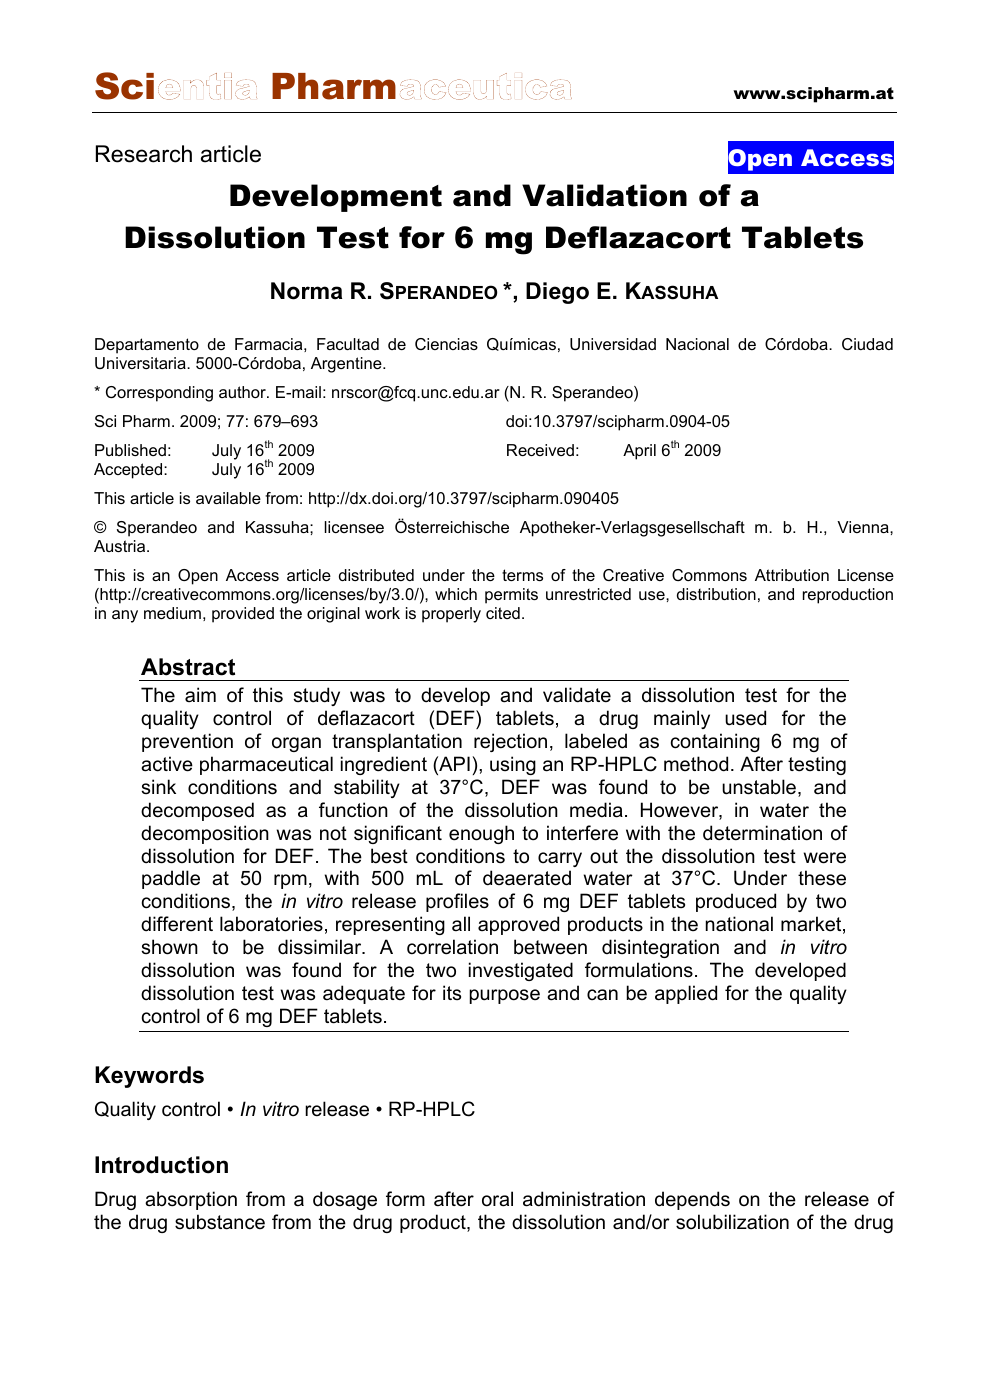 Development and Validation of a Dissolution Test for 6 mg